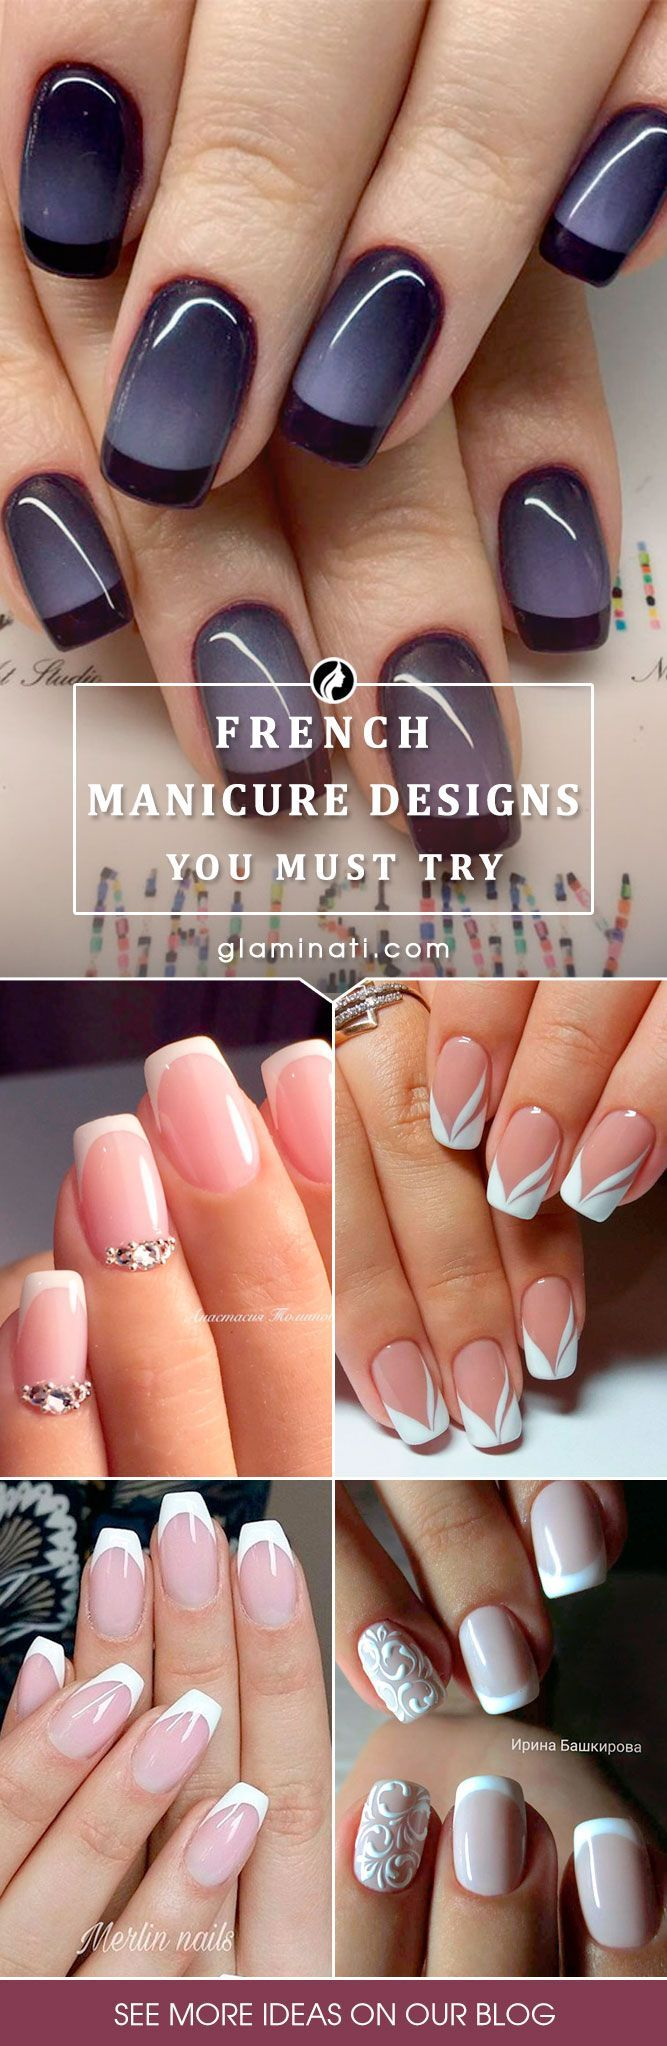 36 New French Manicure Designs To Modernize The Classic Mani <a class=